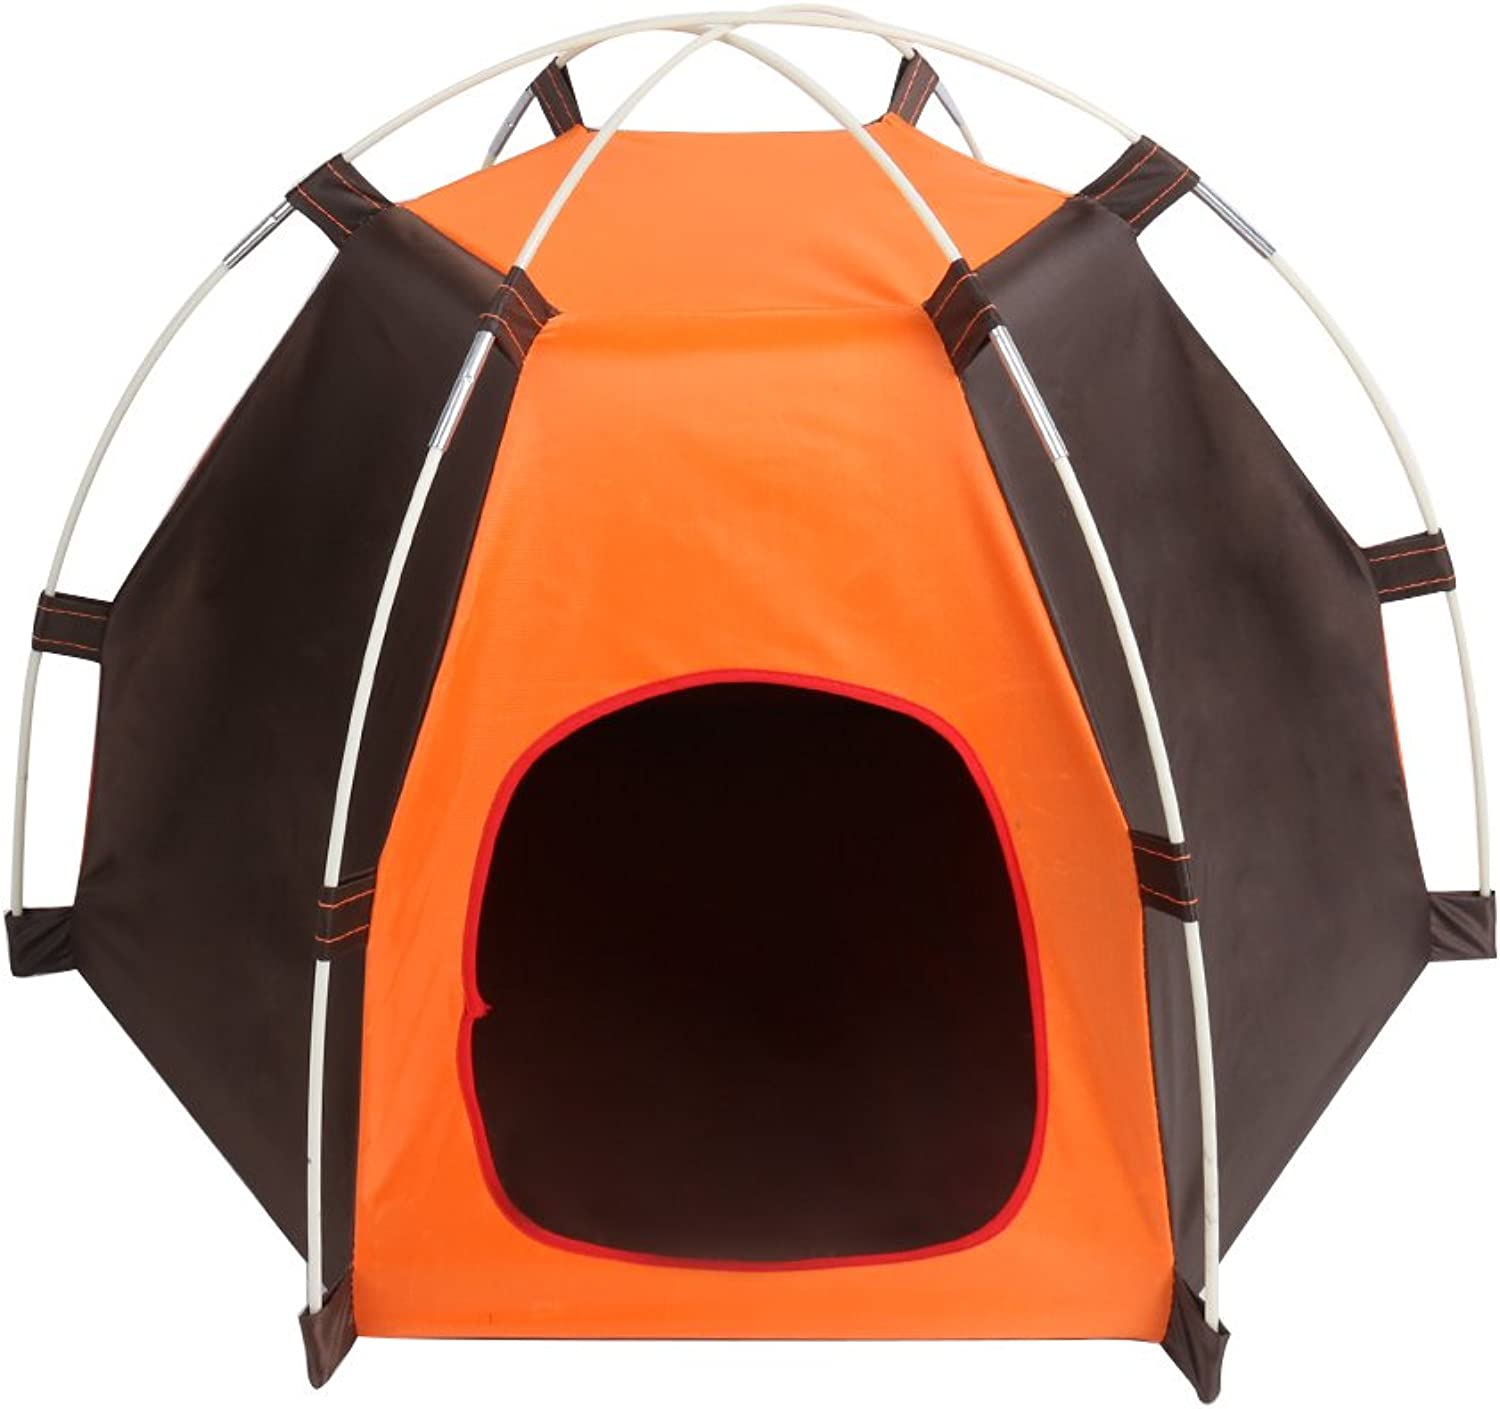 Pets Tent ,Portable Folding Dogs Cats House ,Waterproof and Windproof Outdoor indoor Camping pet bed, easy to clean